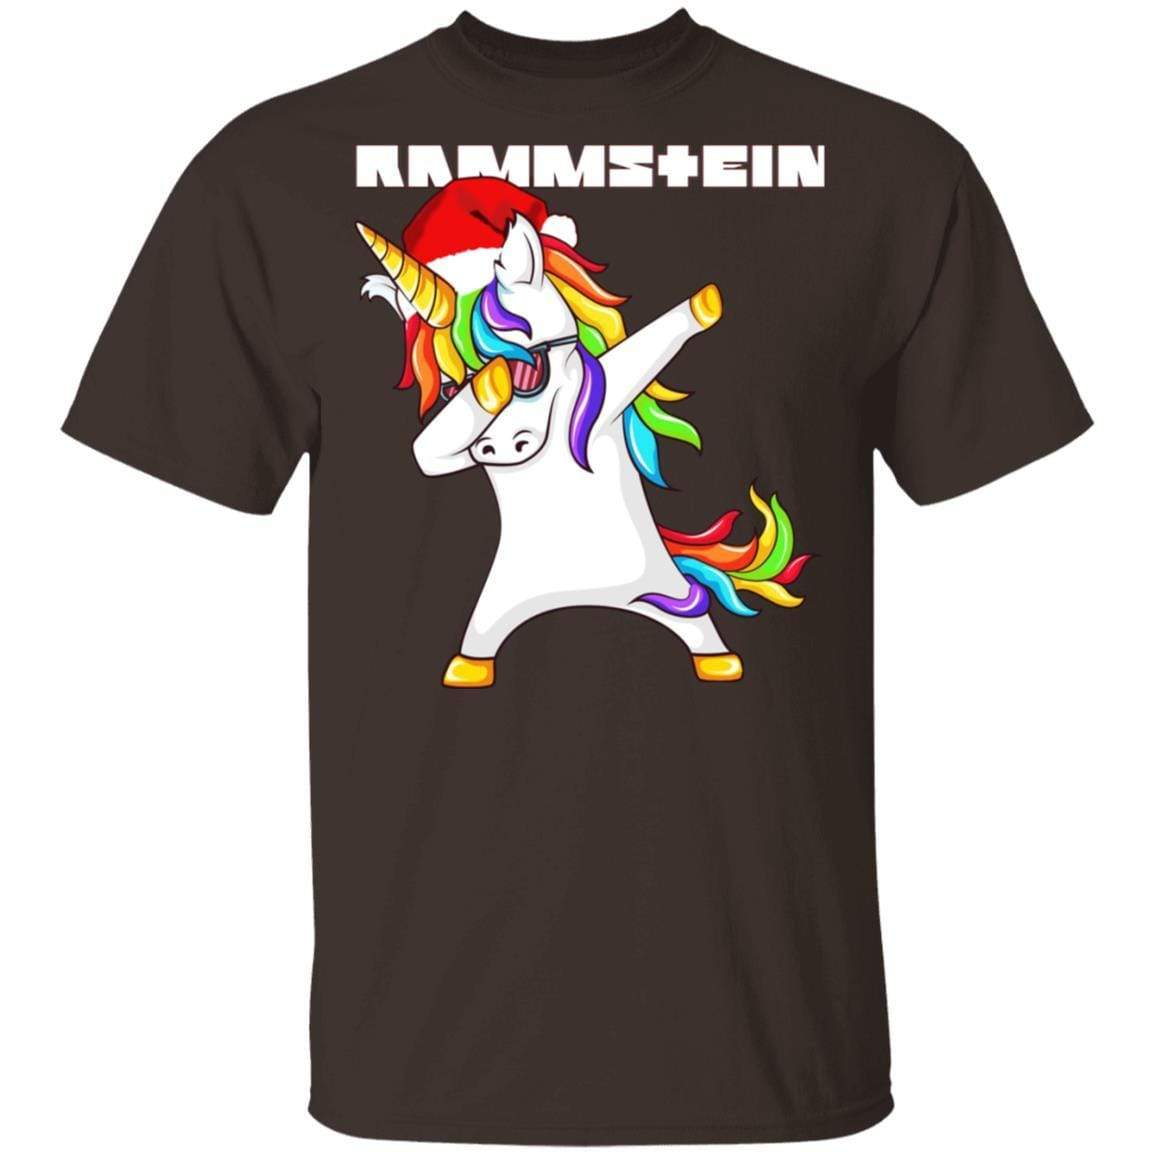 Rammstein Dabbing Unicorn Version T-Shirts, Hoodies 1049-9956-88254696-48152 - Tee Ript